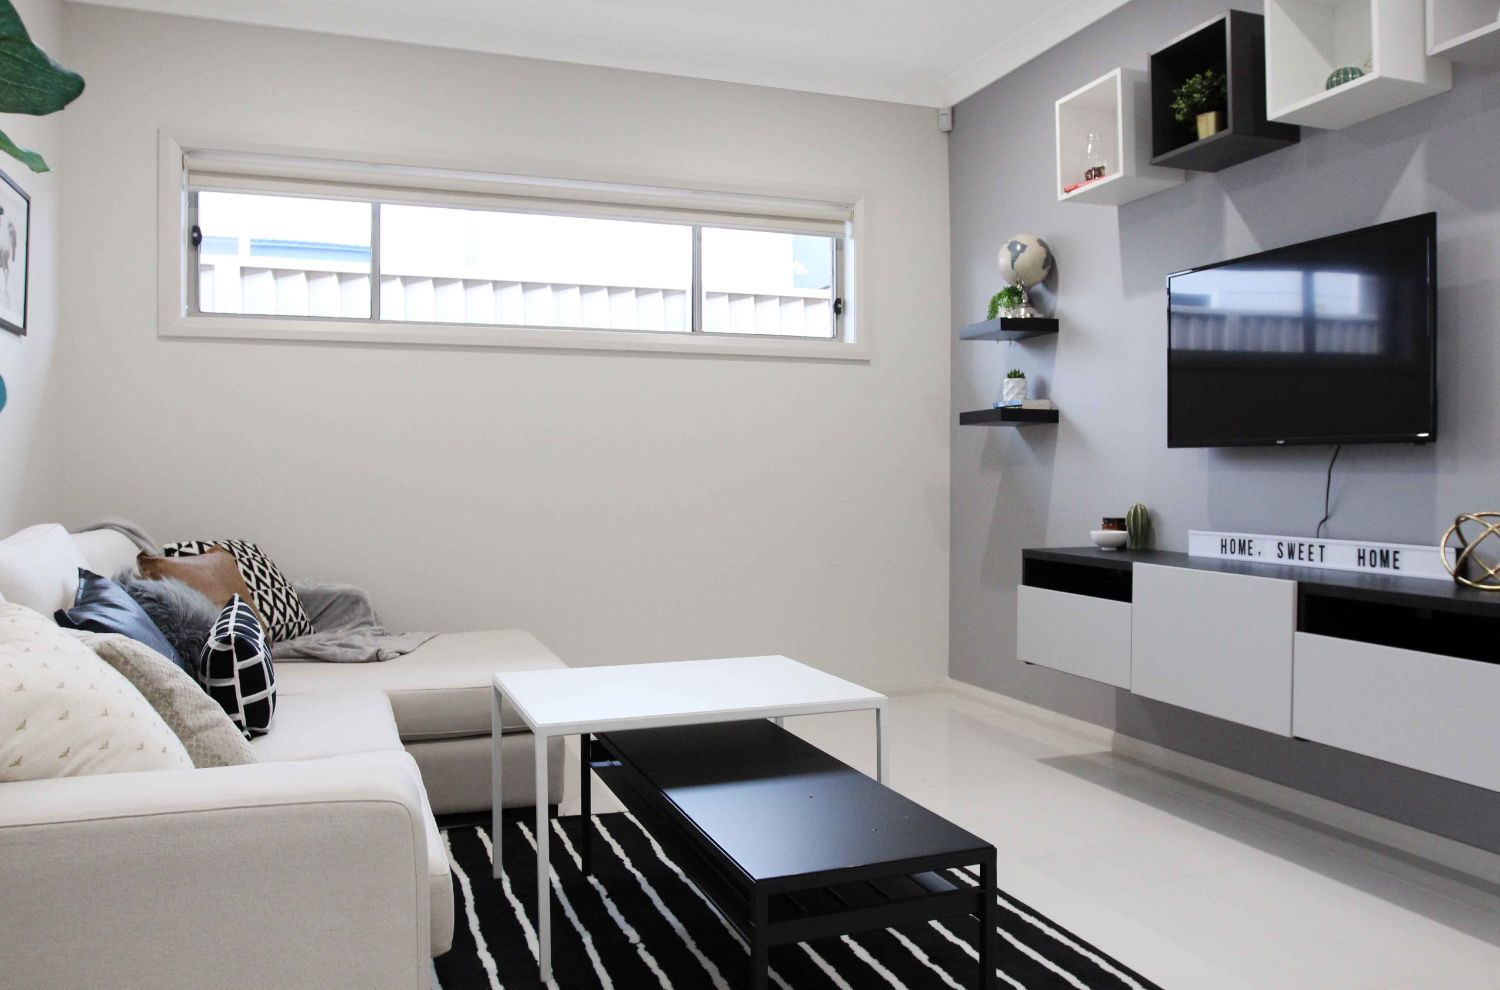 Tv room decoration with sofa and table